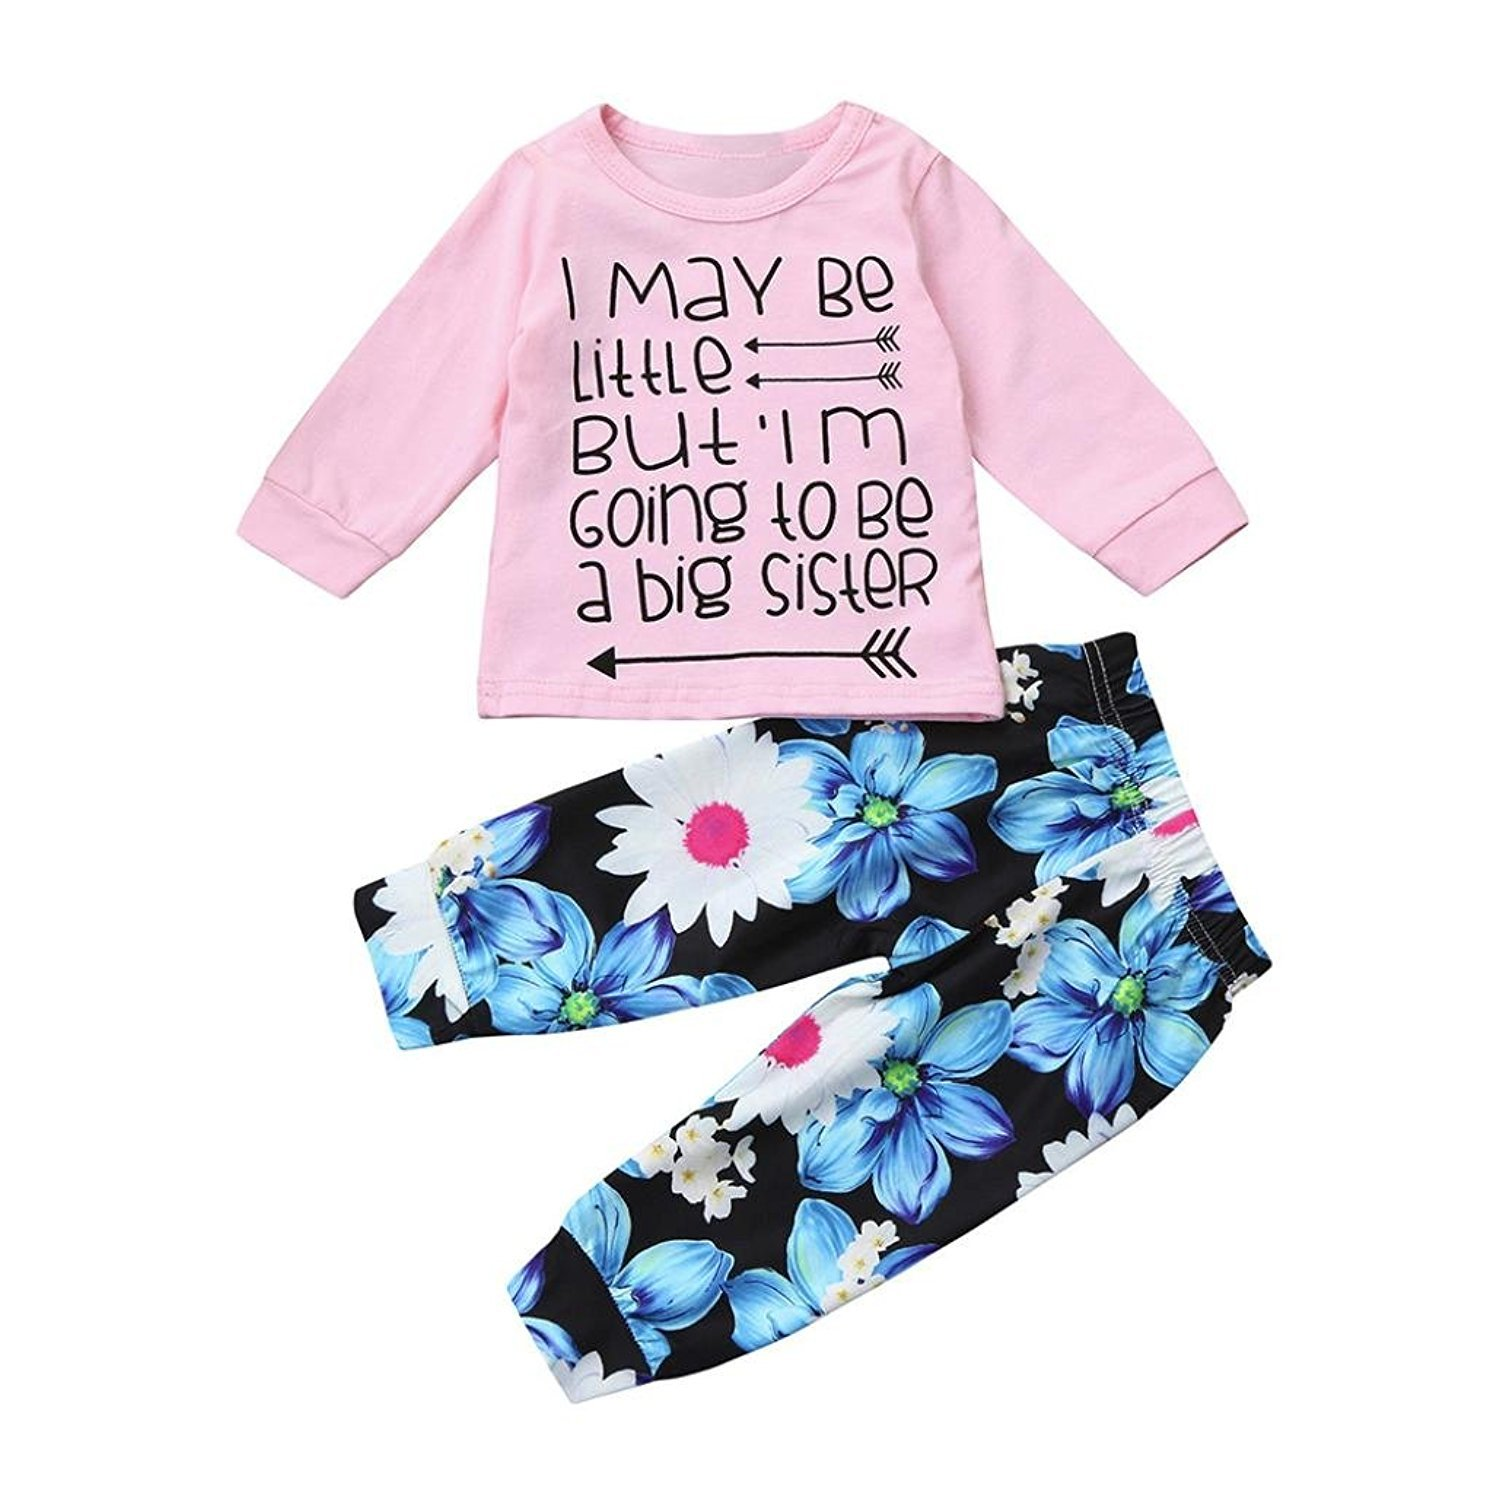 For 0-24 Month Baby, Webla Infant Baby Girls Letter I May Be Little But I'm Going To Be A Big Sister Tops+Floral Pants 2Pcs Outfits Set